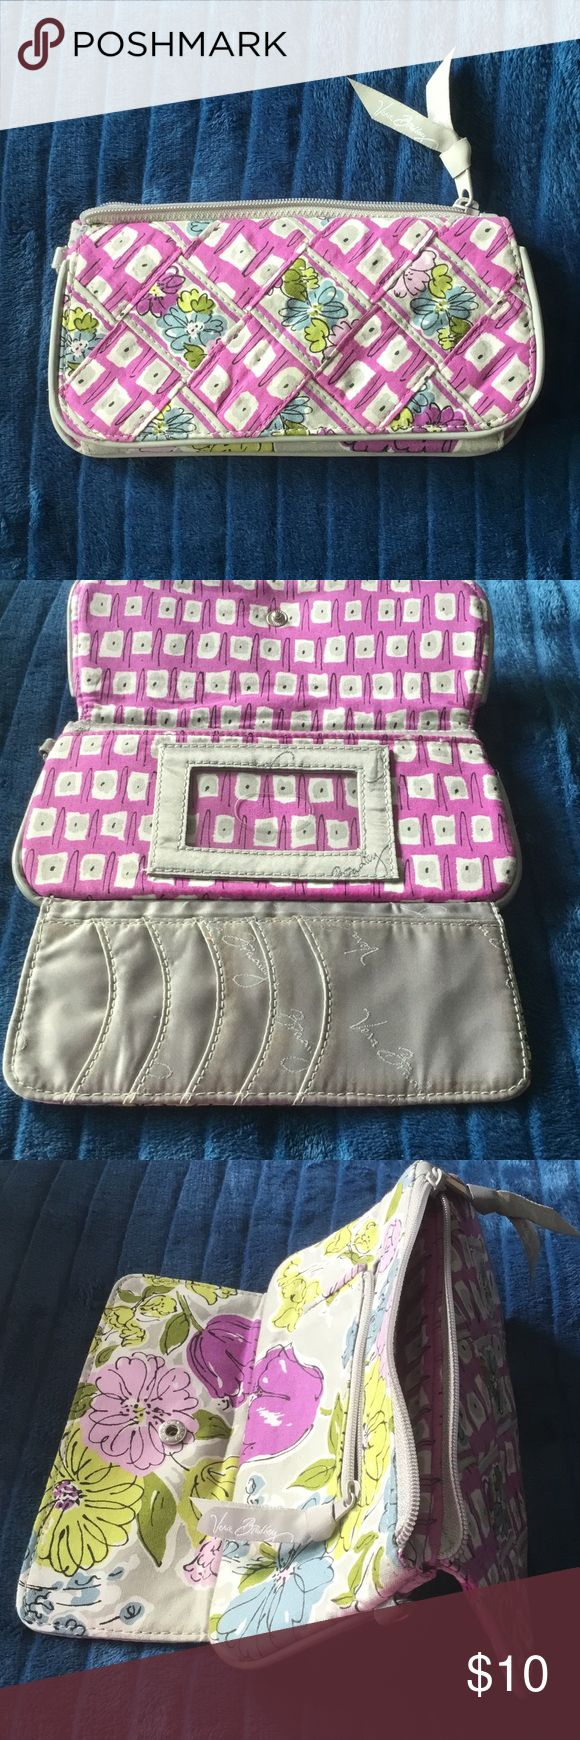 "VERA BRDLEY  wallet.  Like new EUC.  Smoke and pet free home bundle up and make fantastic discount purse measures 8"" x 4""please check out my other vera Bradley wristlet pocketbooks while it's in Perseus thank you Vera Bradley Accessories"